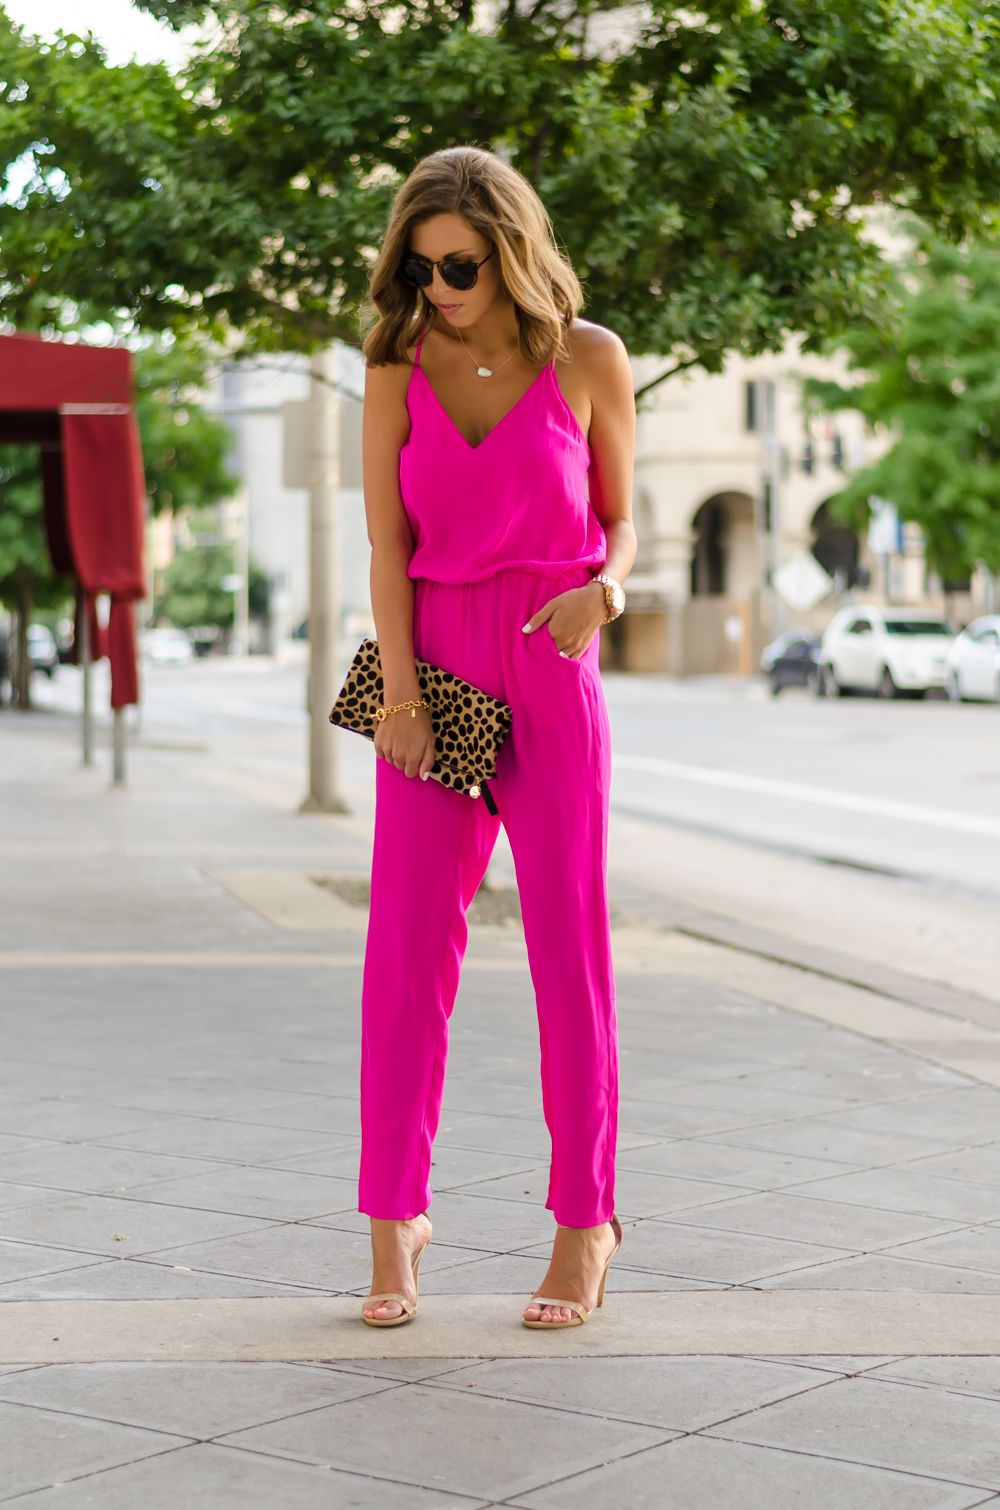 3a101887e5f5 How fun would it be to try such a bright color ! I also love the fit    style of this jumpsuit.